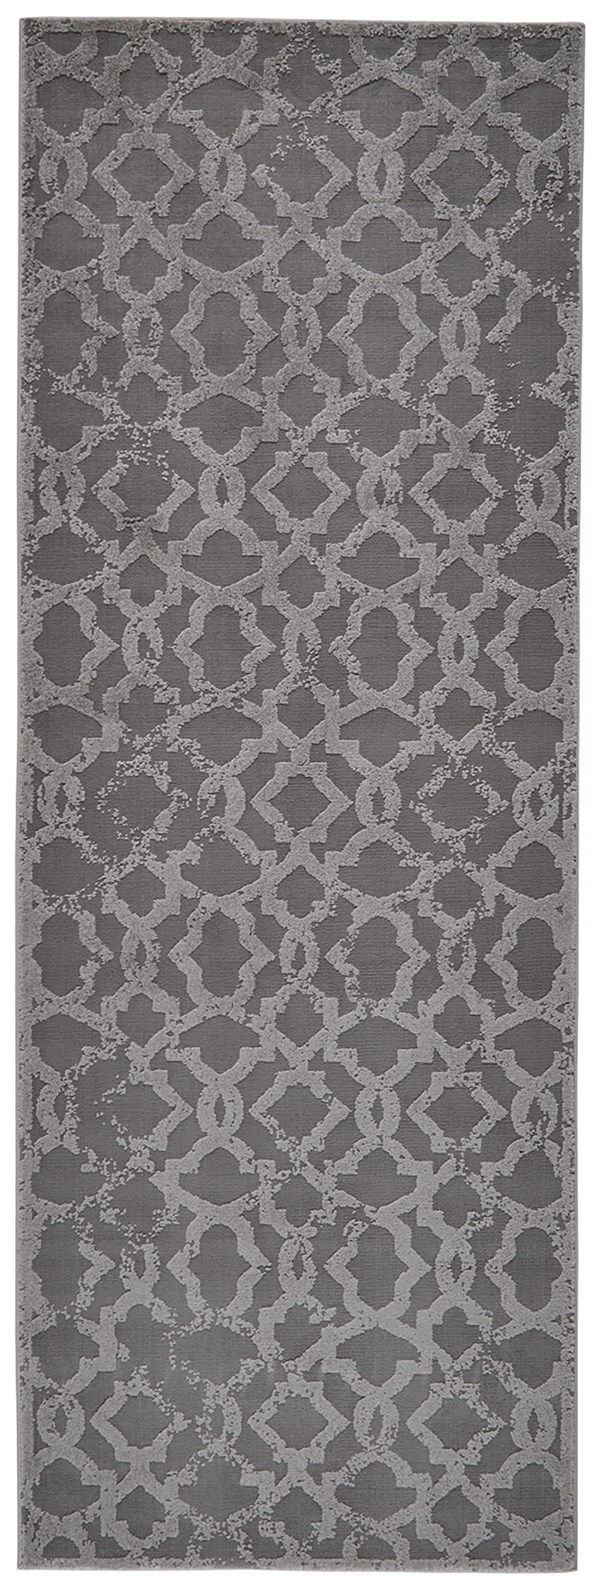 Silver Textured Solid Area Rug